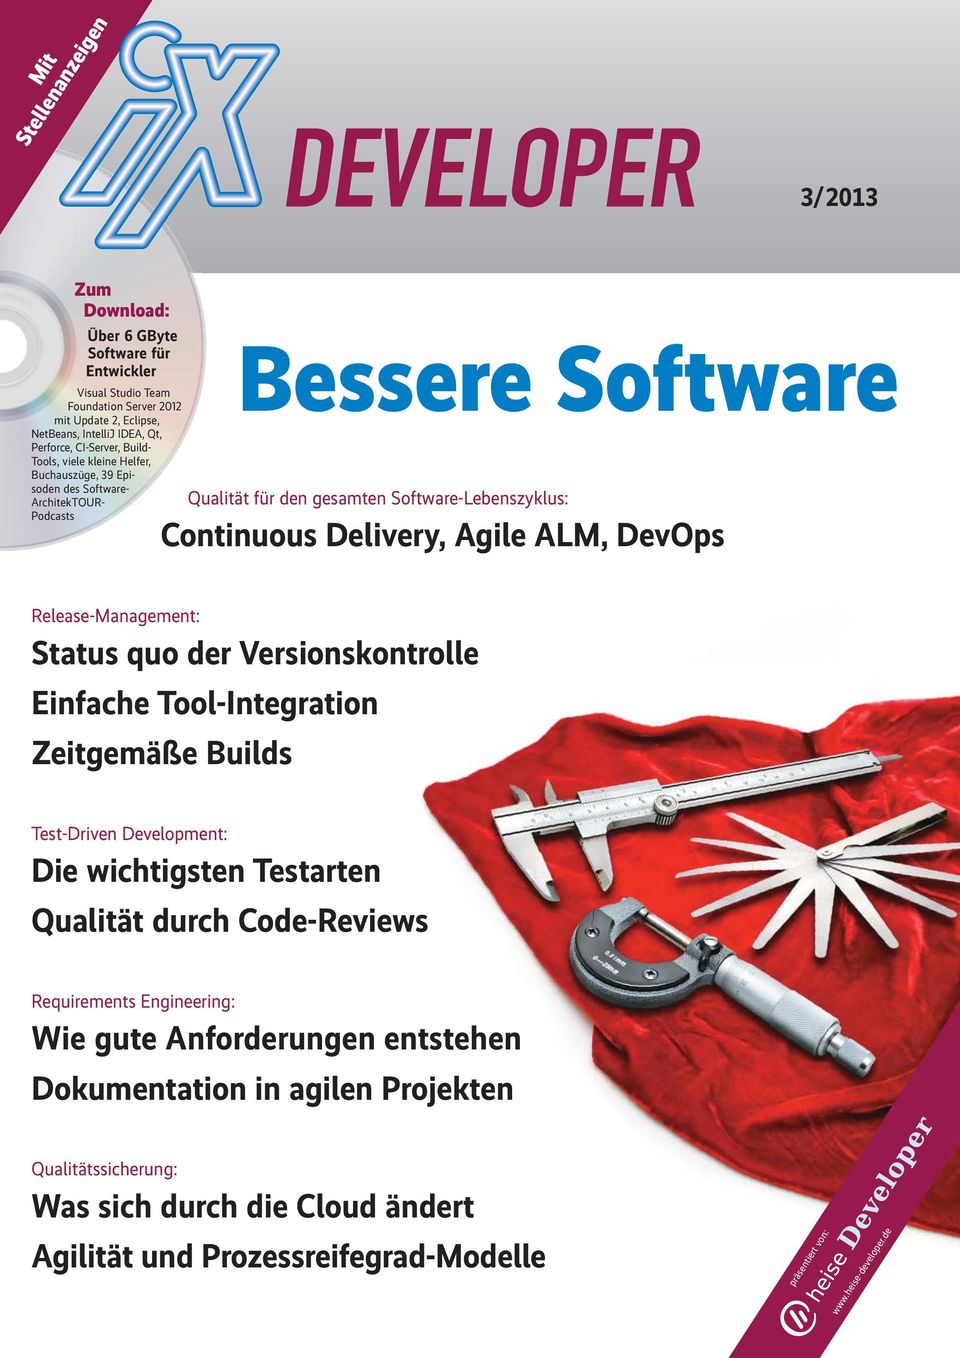 DevOps Release-Management: Status quo der Versionskontrolle Einfache Tool-Integration Zeitgemäße Builds Test-Driven Development: Die wichtigsten Testarten Qualität durch Code-Reviews Requirements